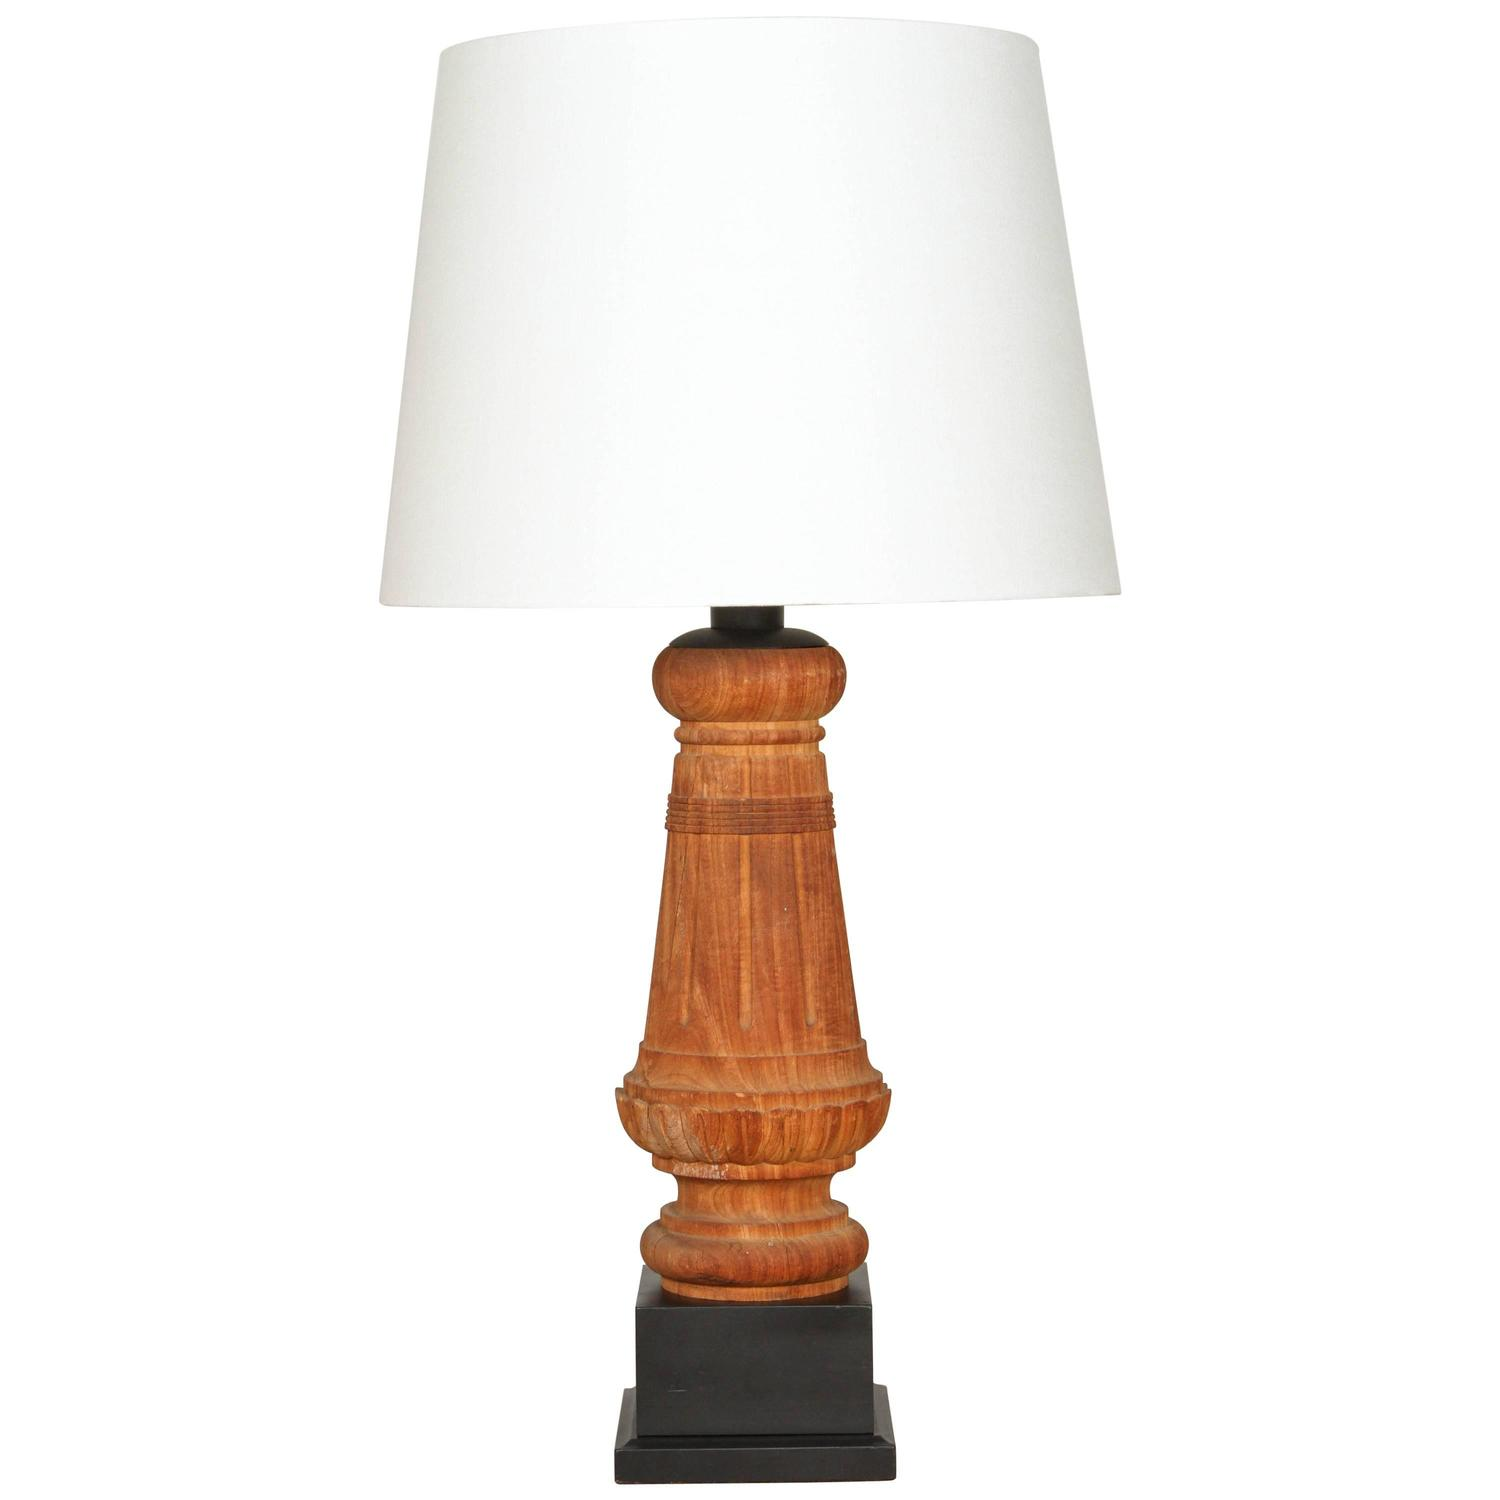 wood artifact table lamp with custom linen shade at 1stdibs. Black Bedroom Furniture Sets. Home Design Ideas